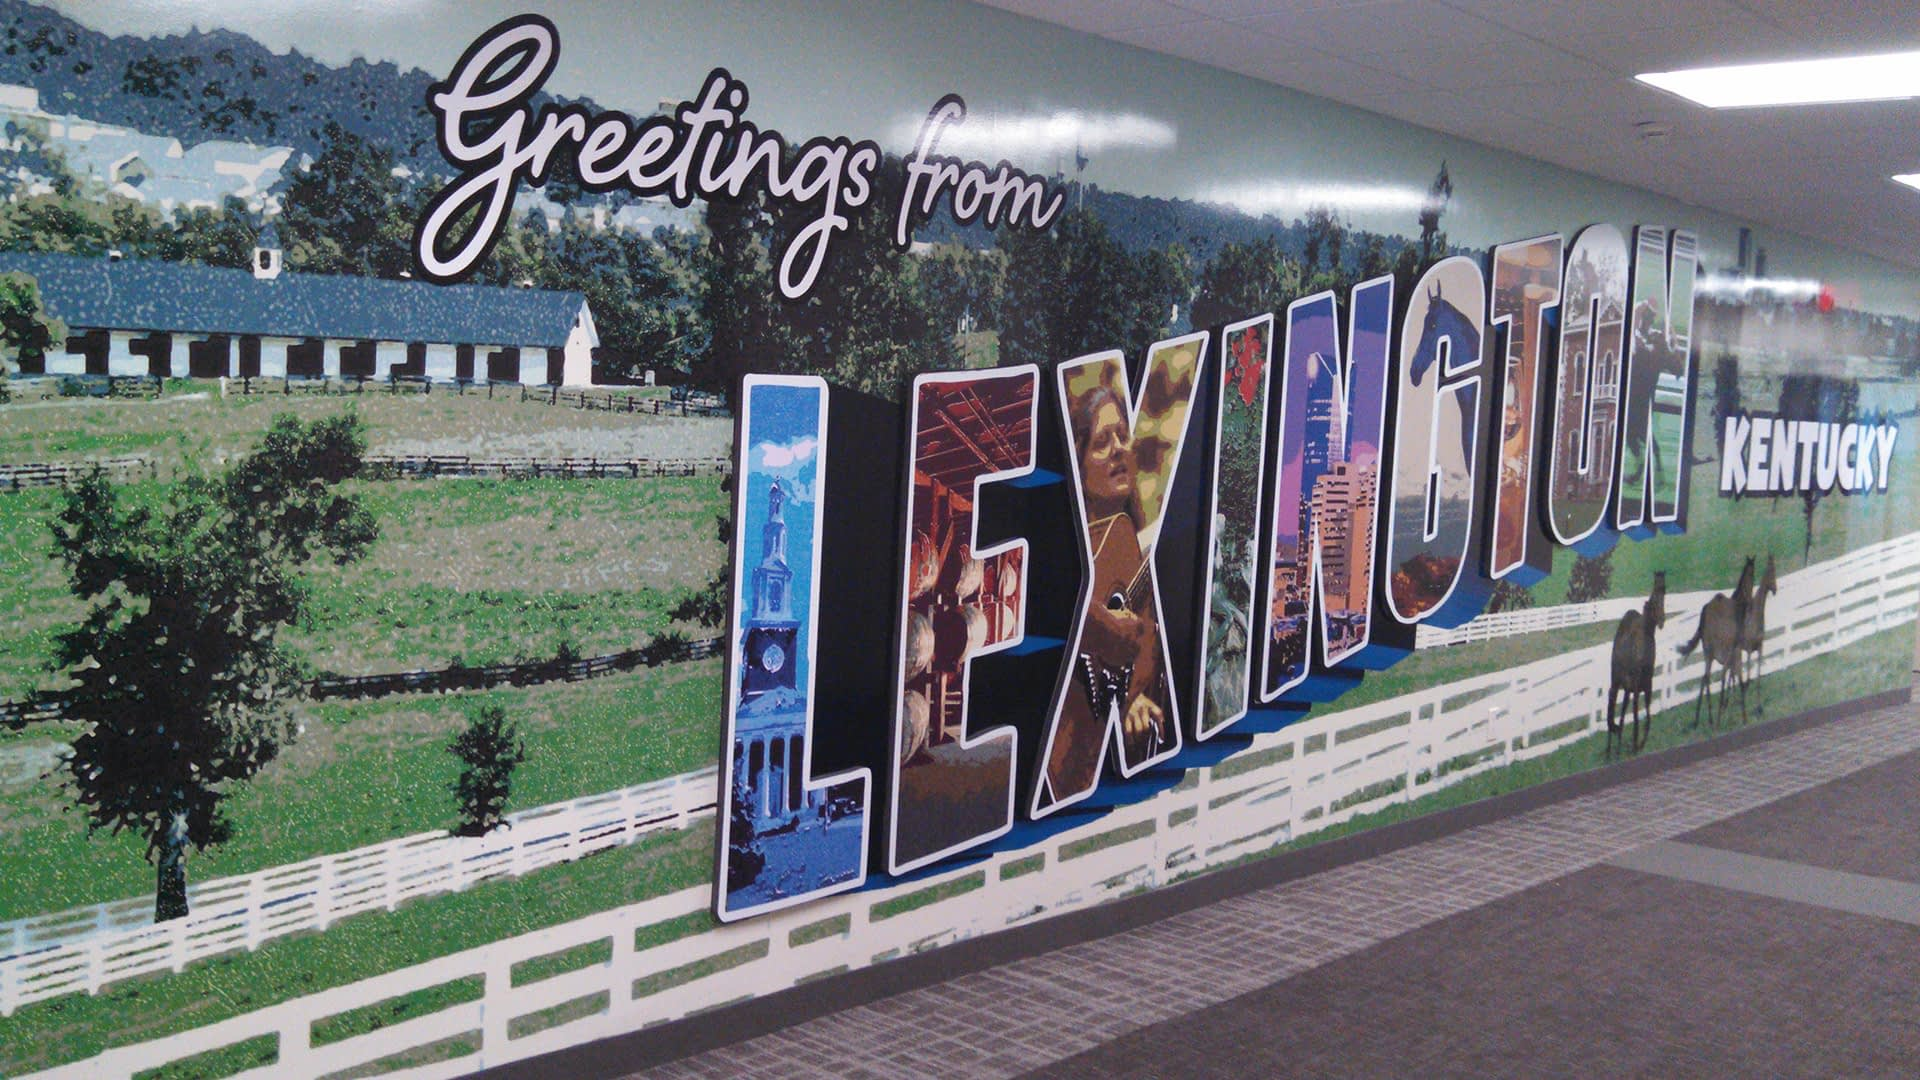 Greetings for Lexington Kentucky Wall Graphic